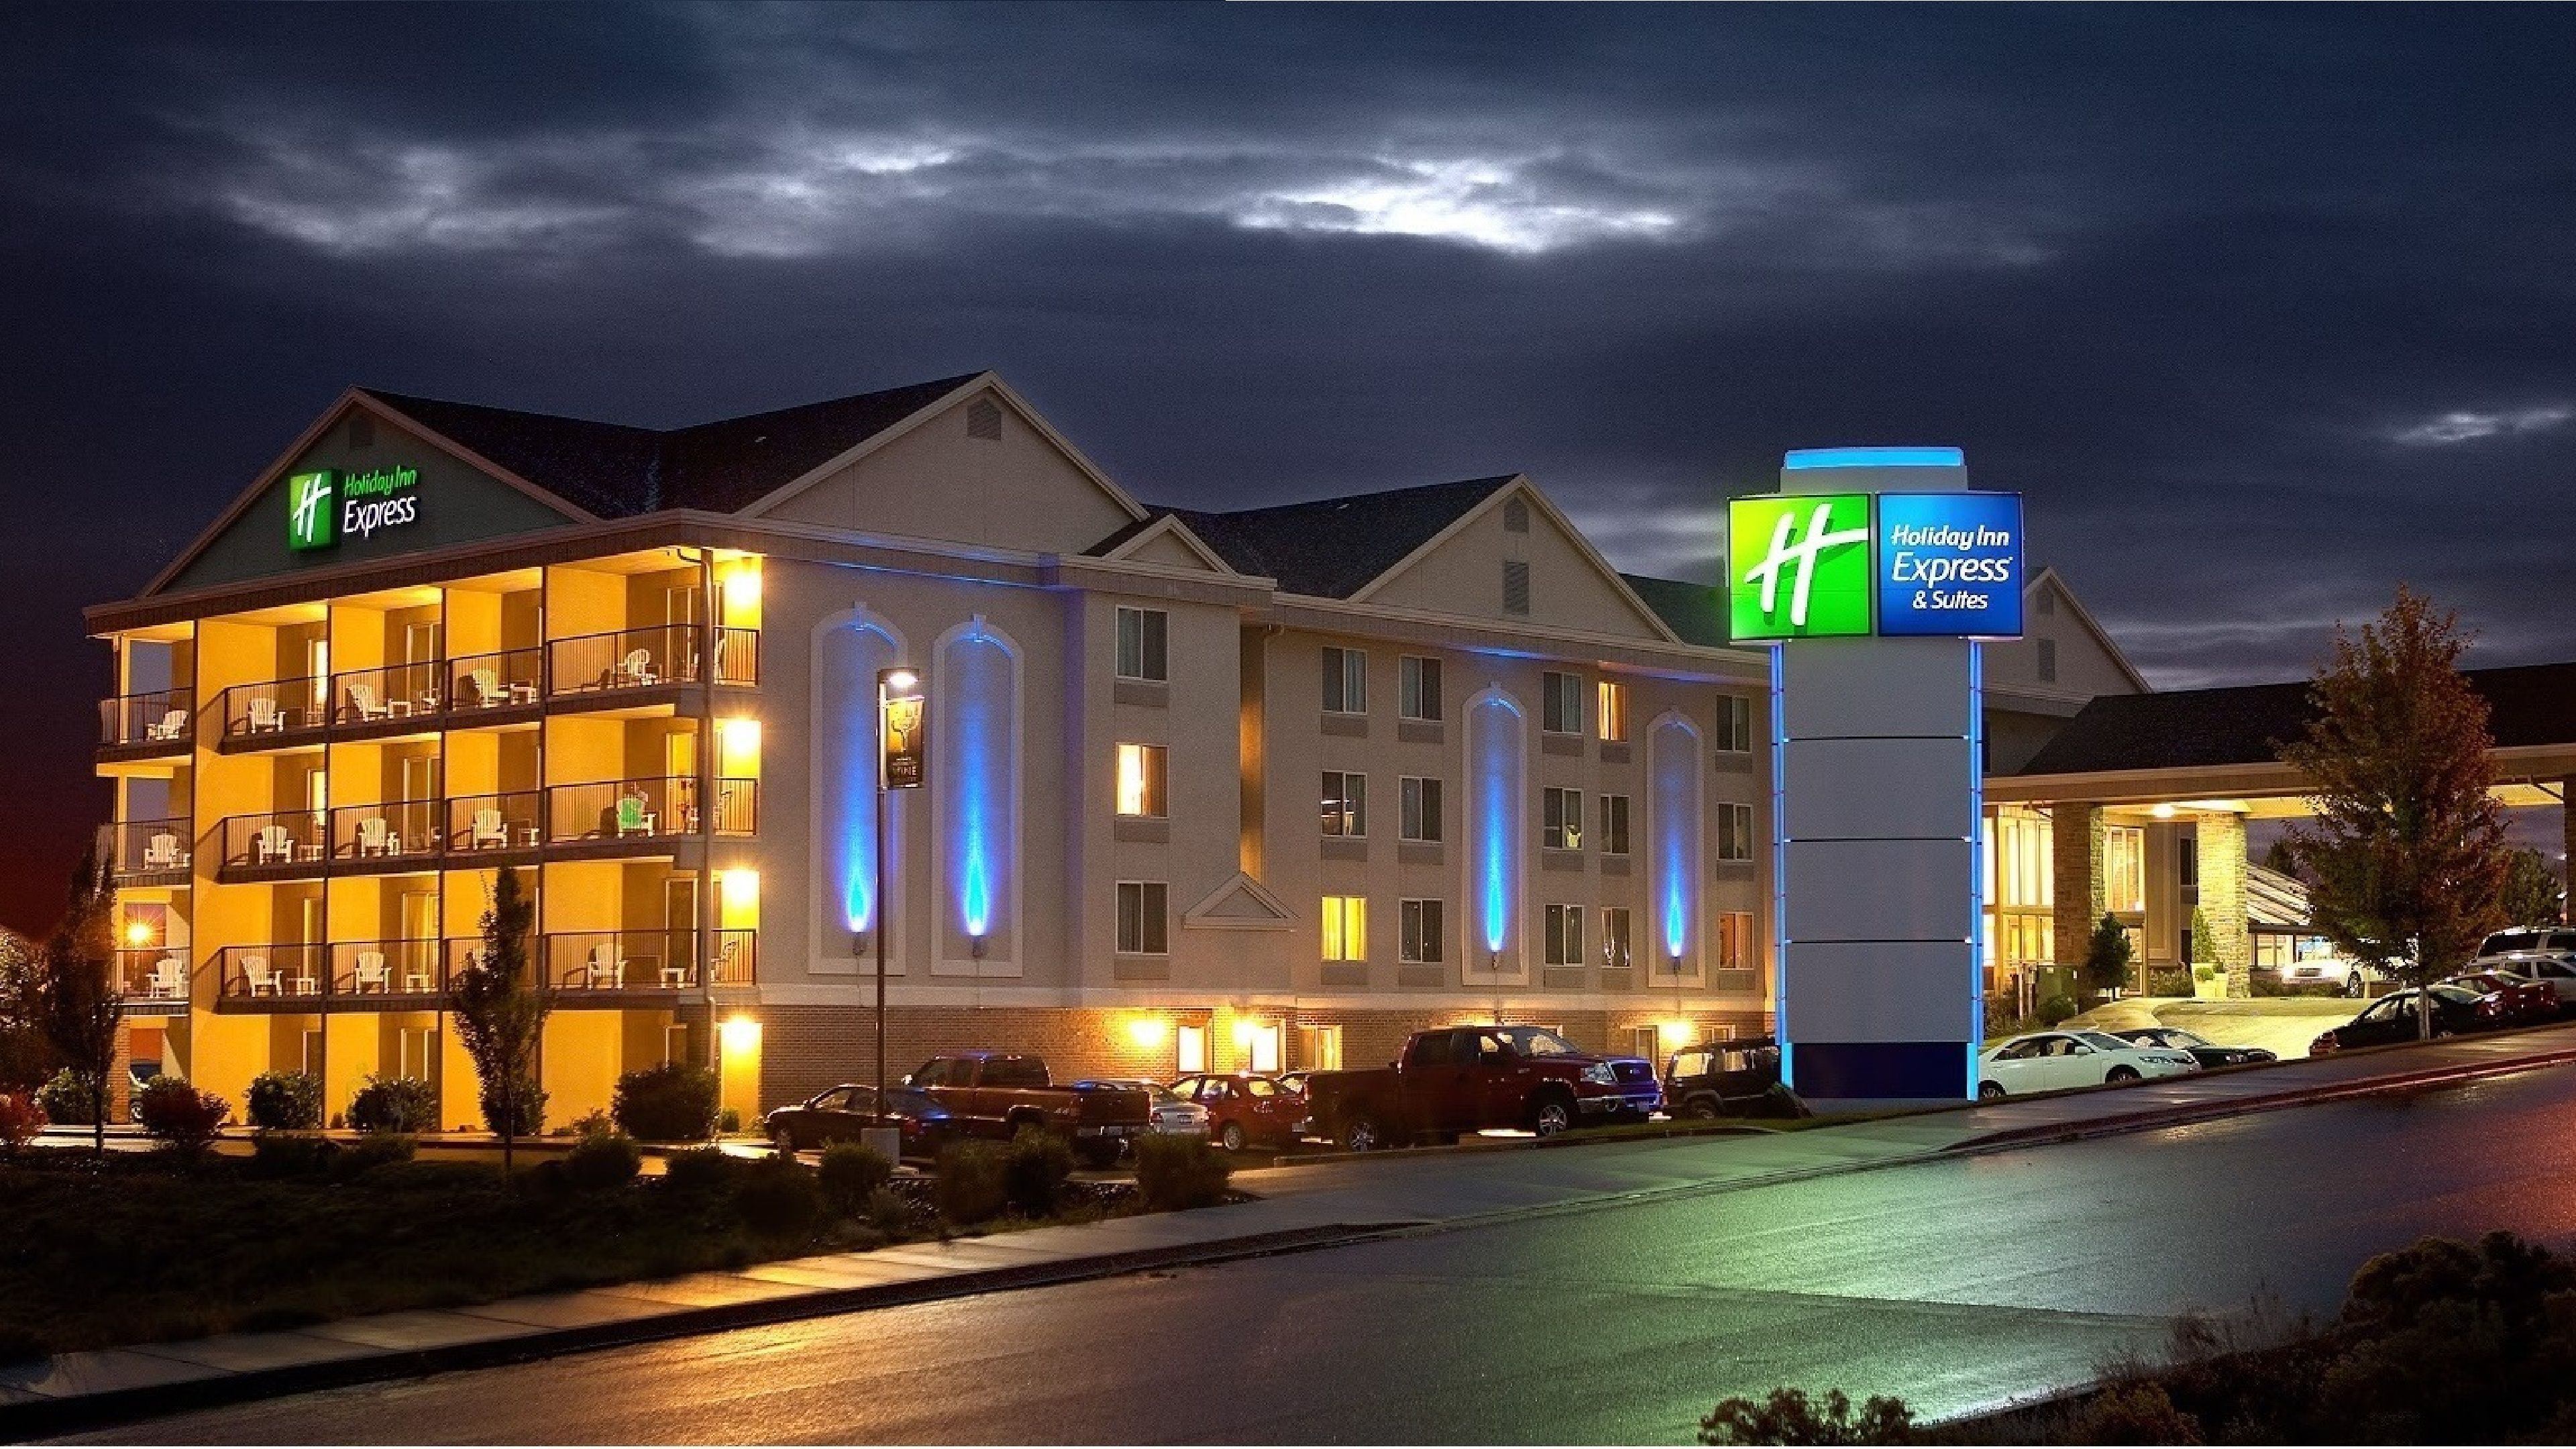 Holiday Inn Express Amp Suites Research Triangle Park